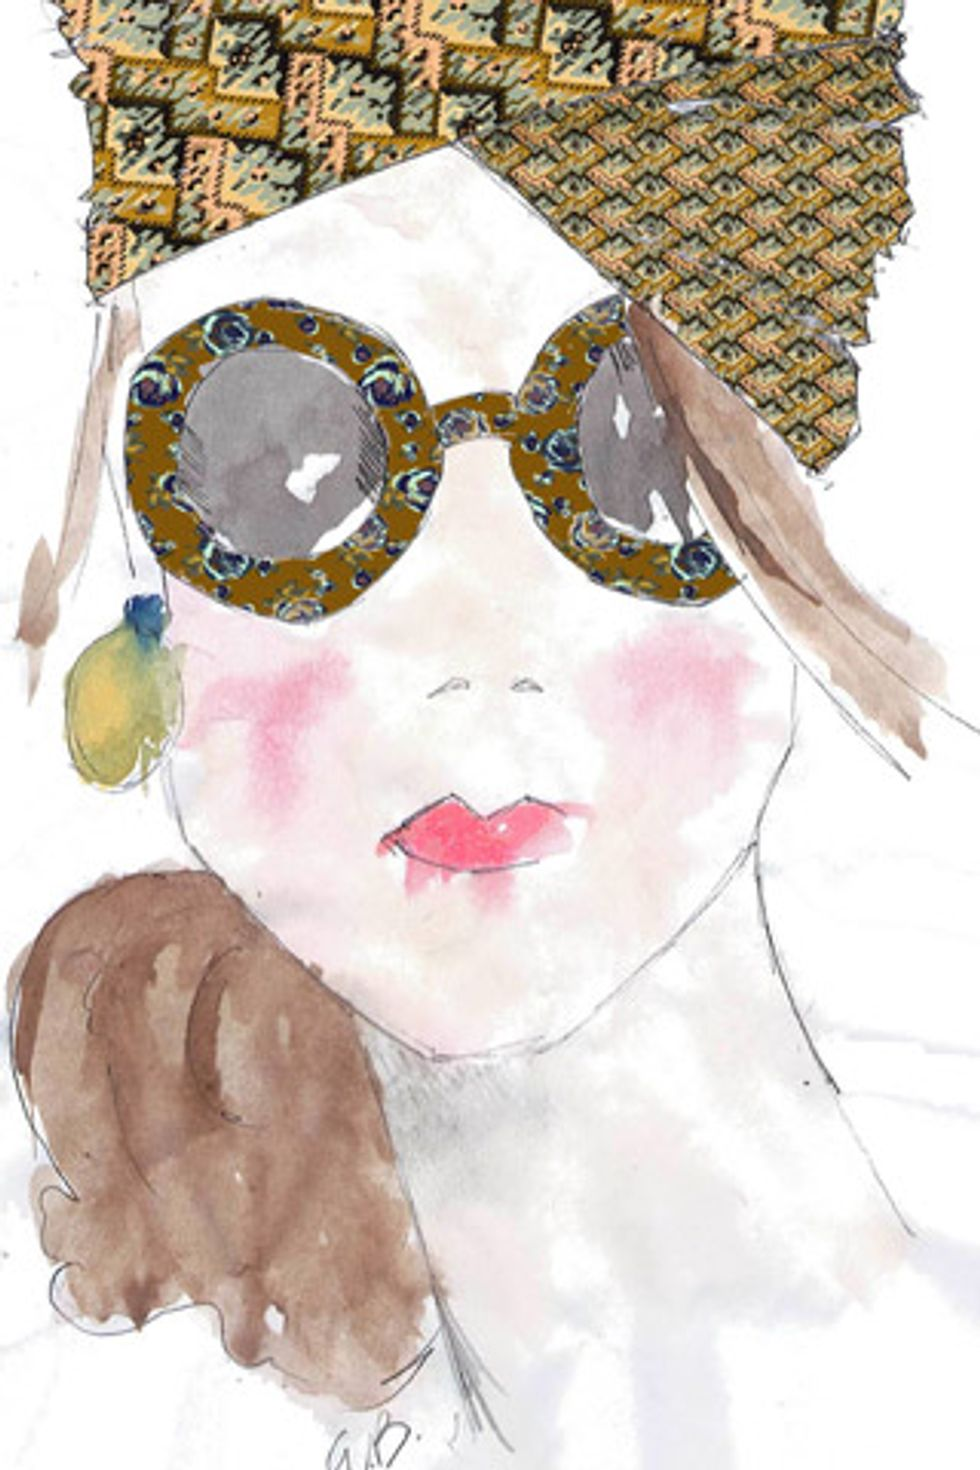 Suno X Warby Parker to Make Its Debut at New York Fall Fashion Week 2011